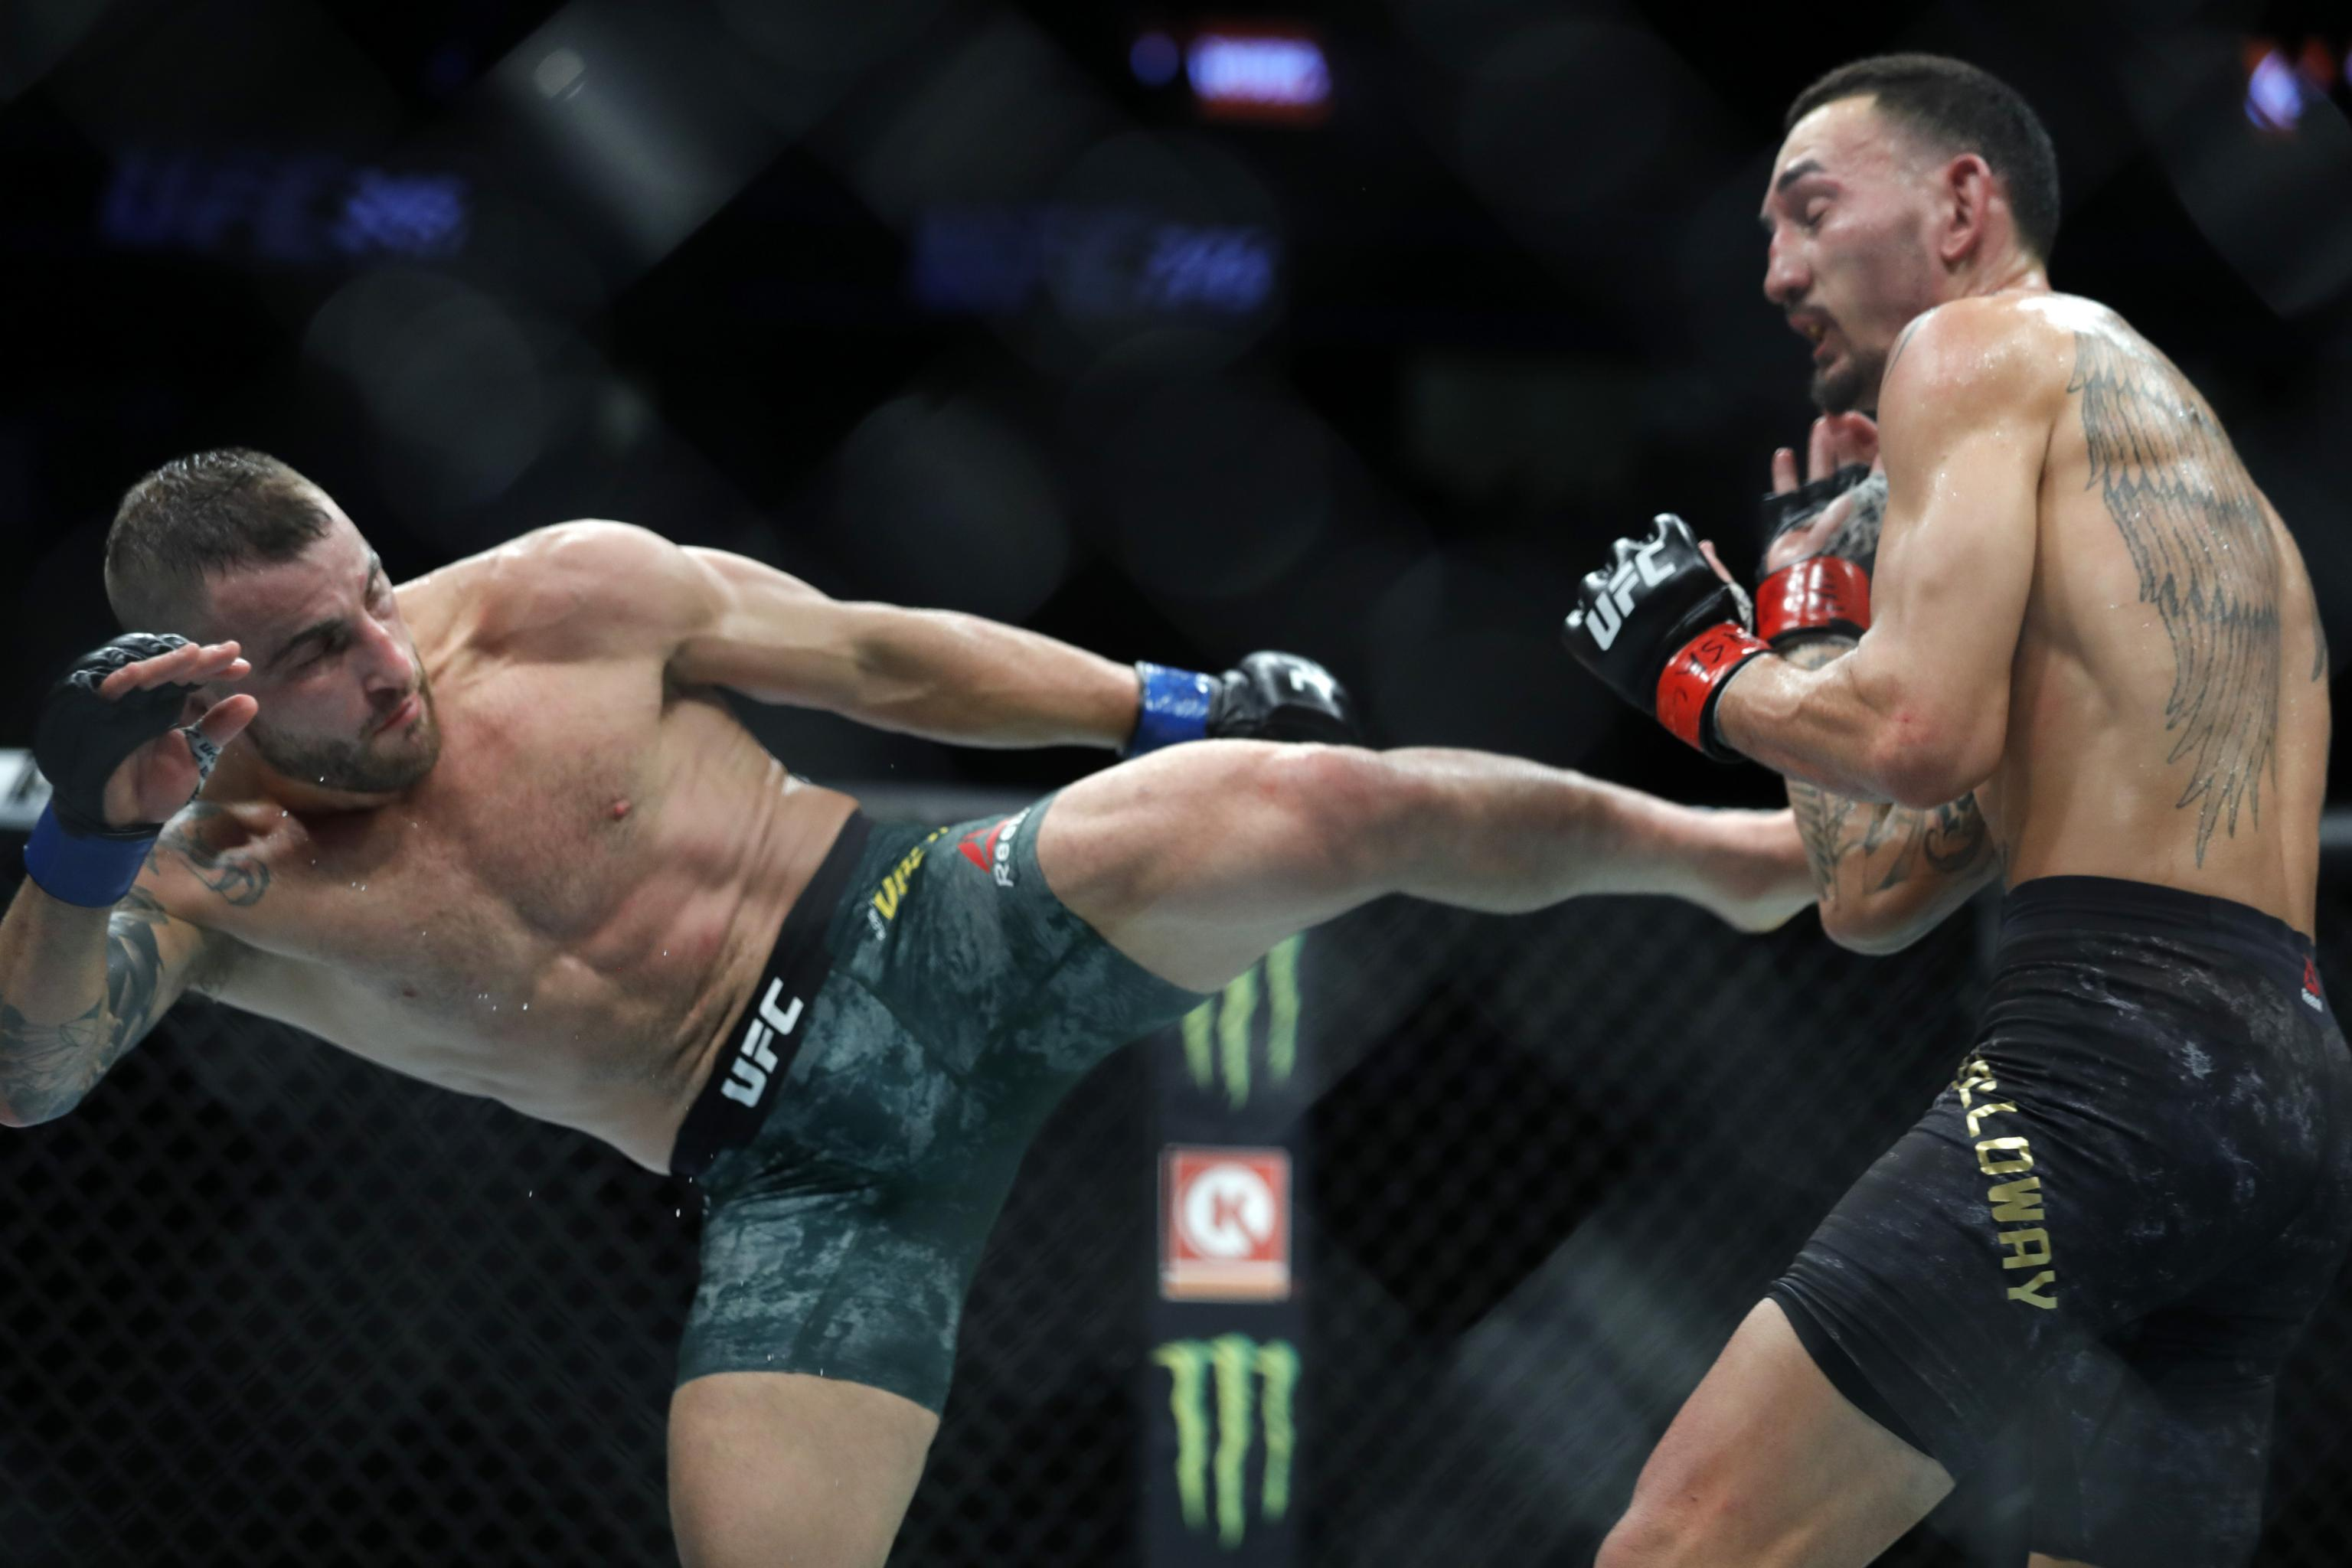 Alexander Volkanovski vs. Max Holloway live blog, play-by-play updates, results, highlights from the vacant UFC Featherweight Championship fight at UFC 251: Fight Island.